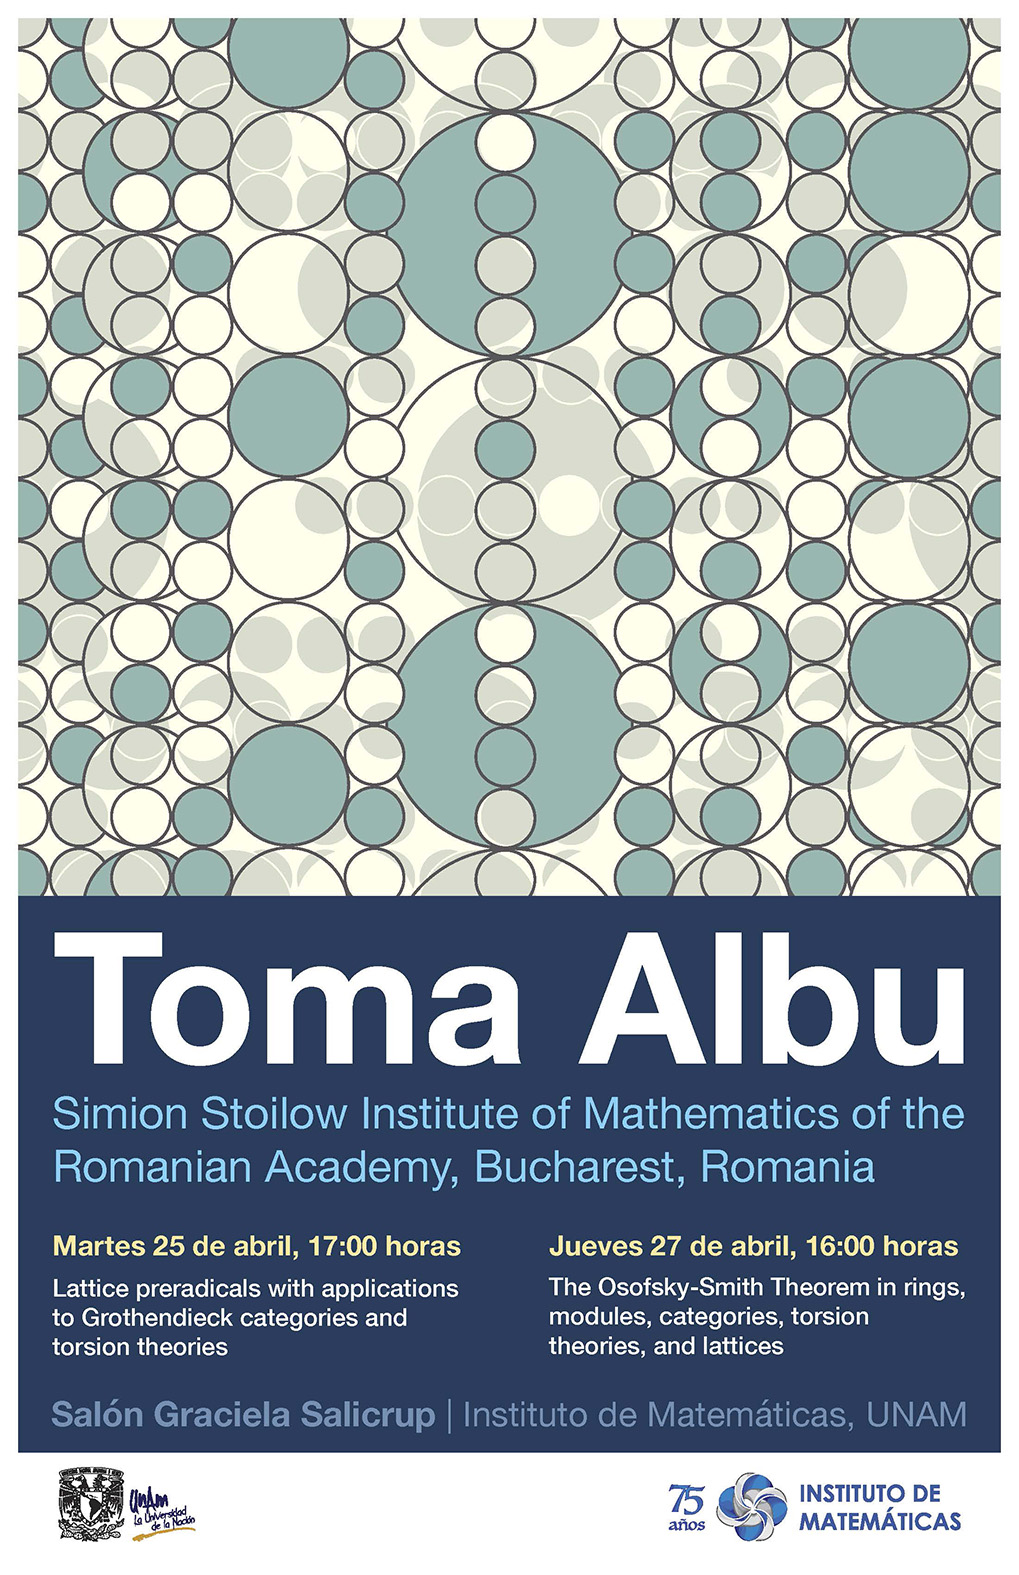 Pláticas con Toma Albu, Simion Stoilow Institute of Mathematics of the Romanian Academy, Bucharest, Romania